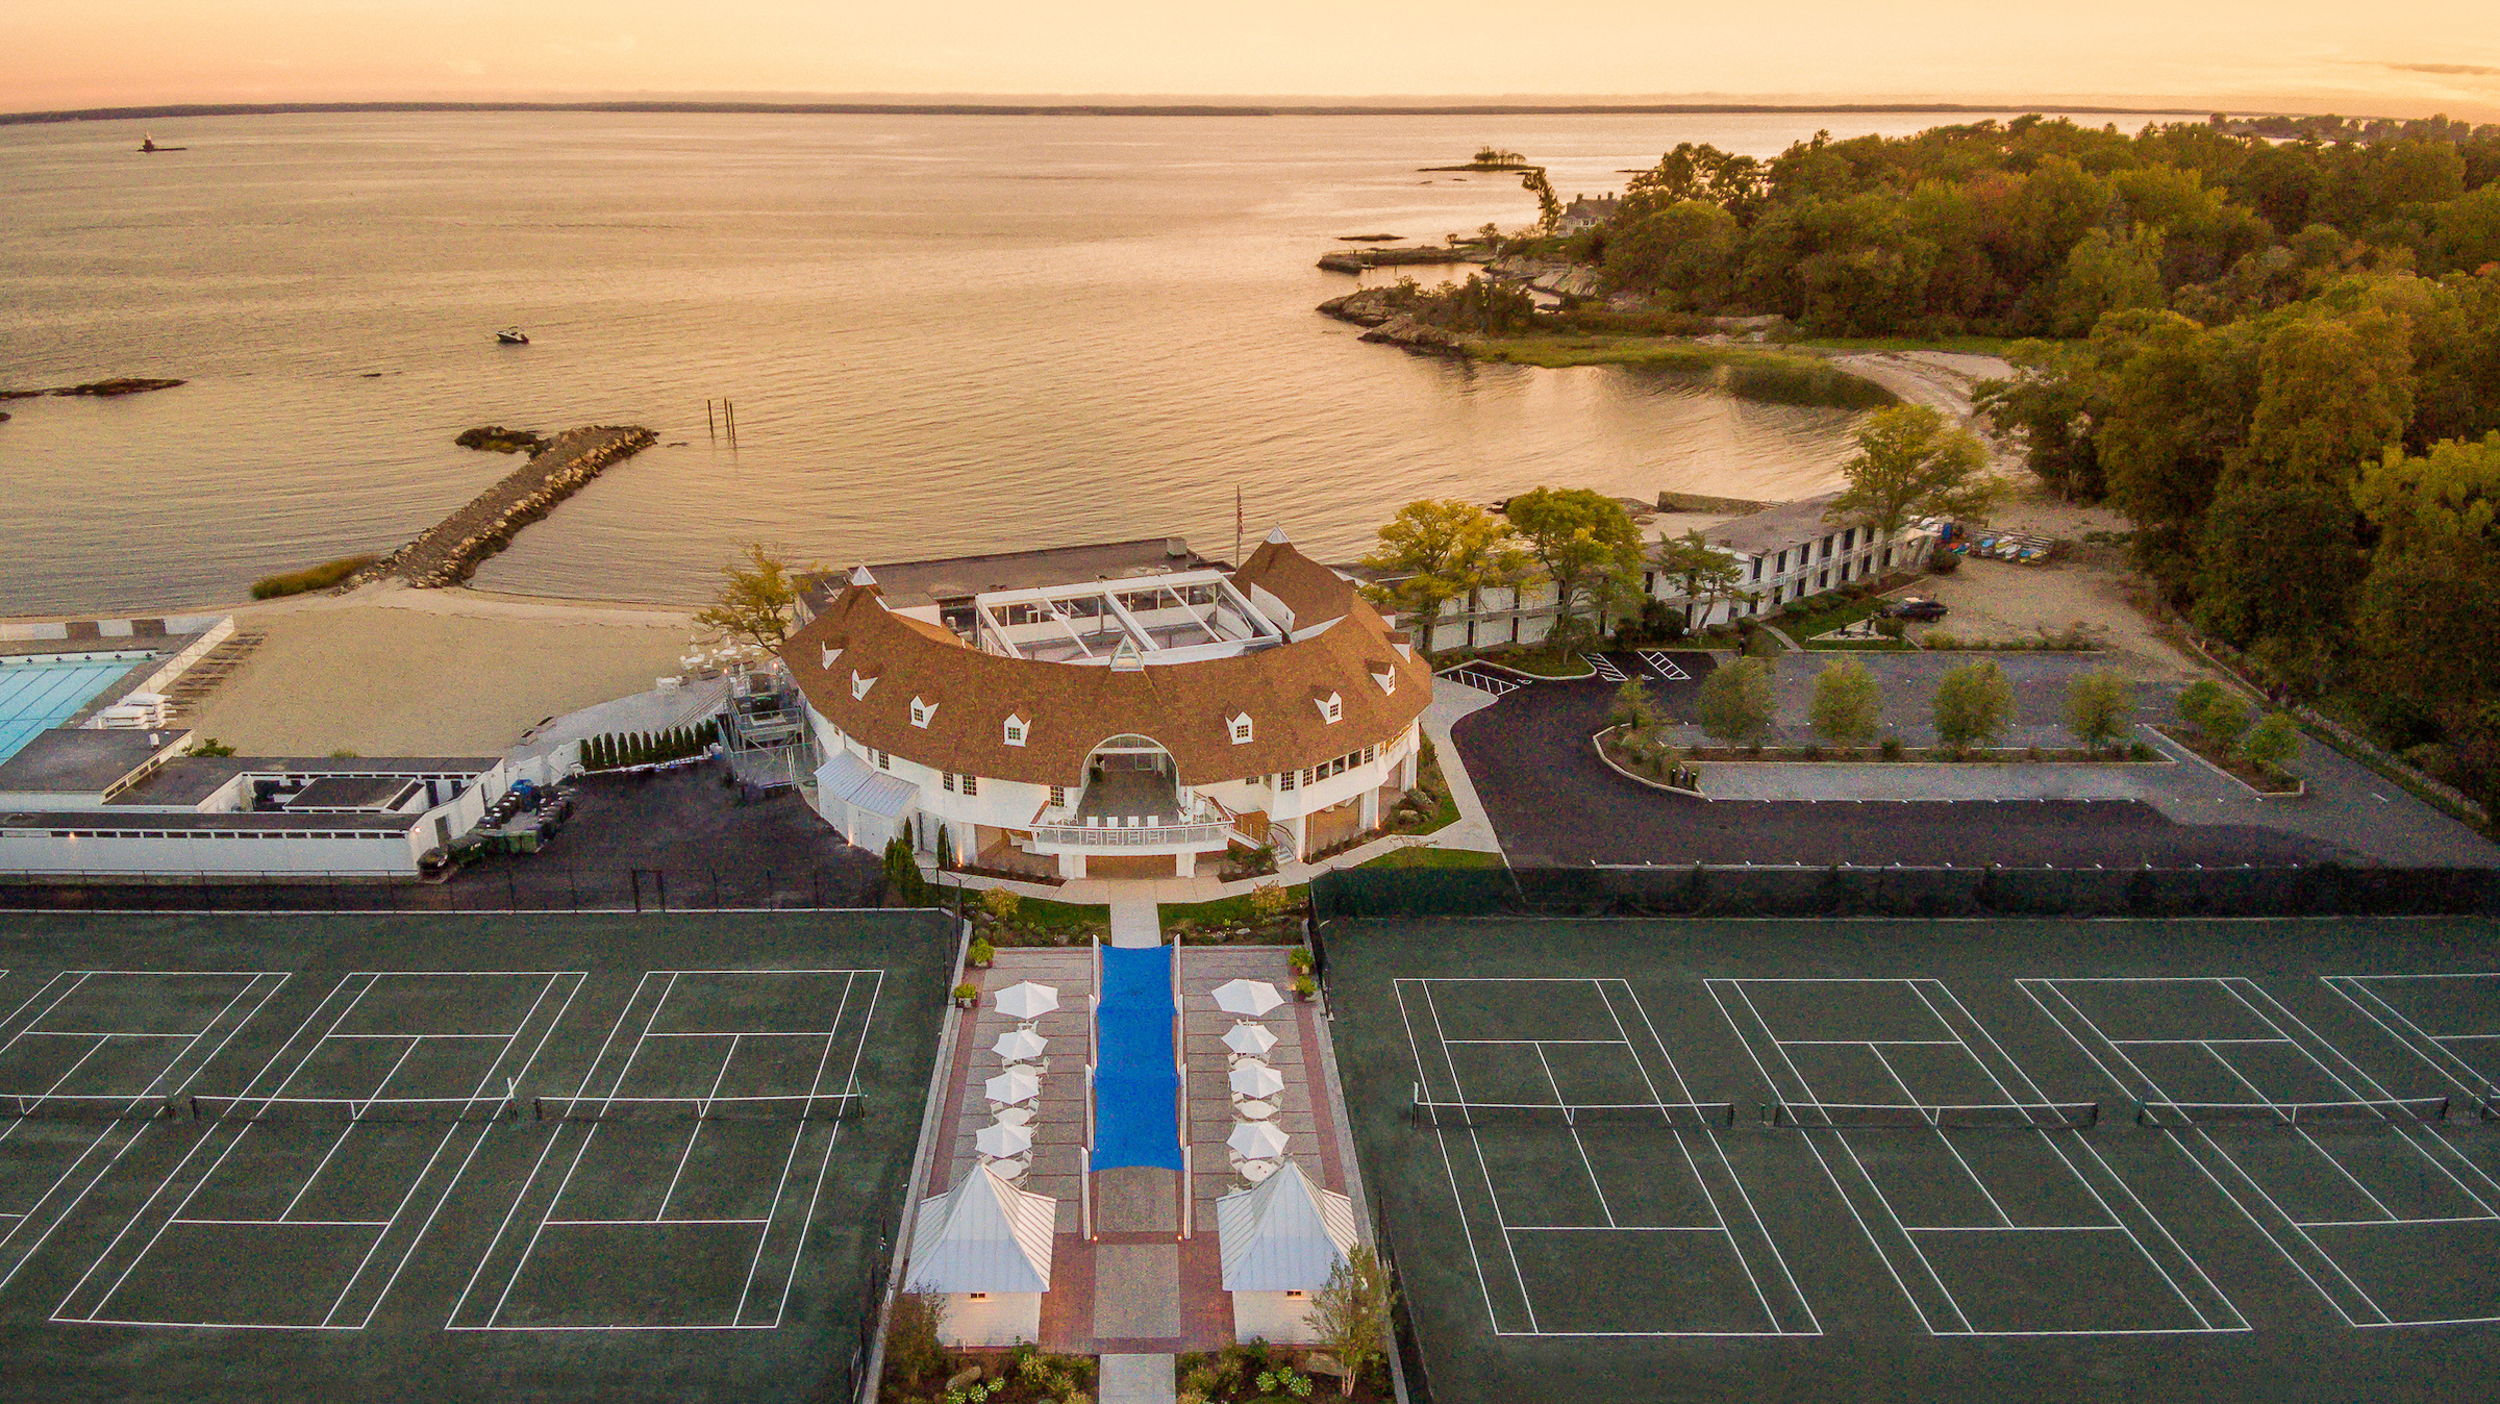 Drone aerial of the Tokeneke Beach Club at sunset in Darien, CT. Architectural design by PBS Architects and Rogers McCagg Architects.